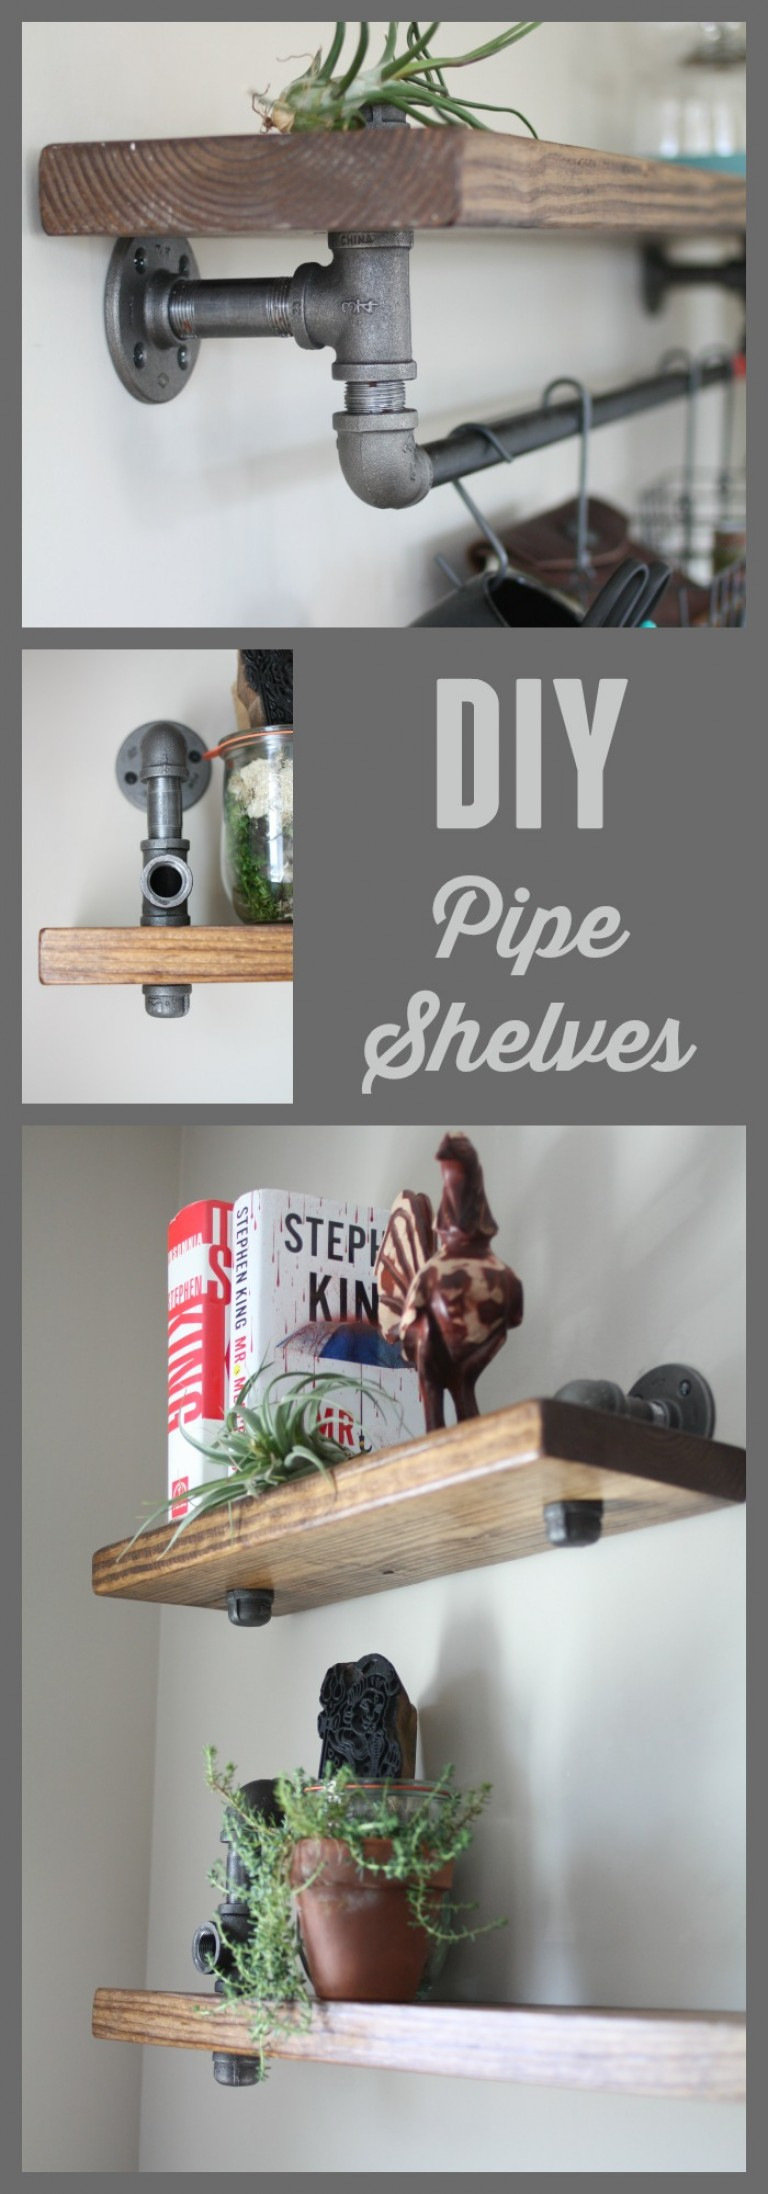 How to make diy industrial shelves from black iron pipe.